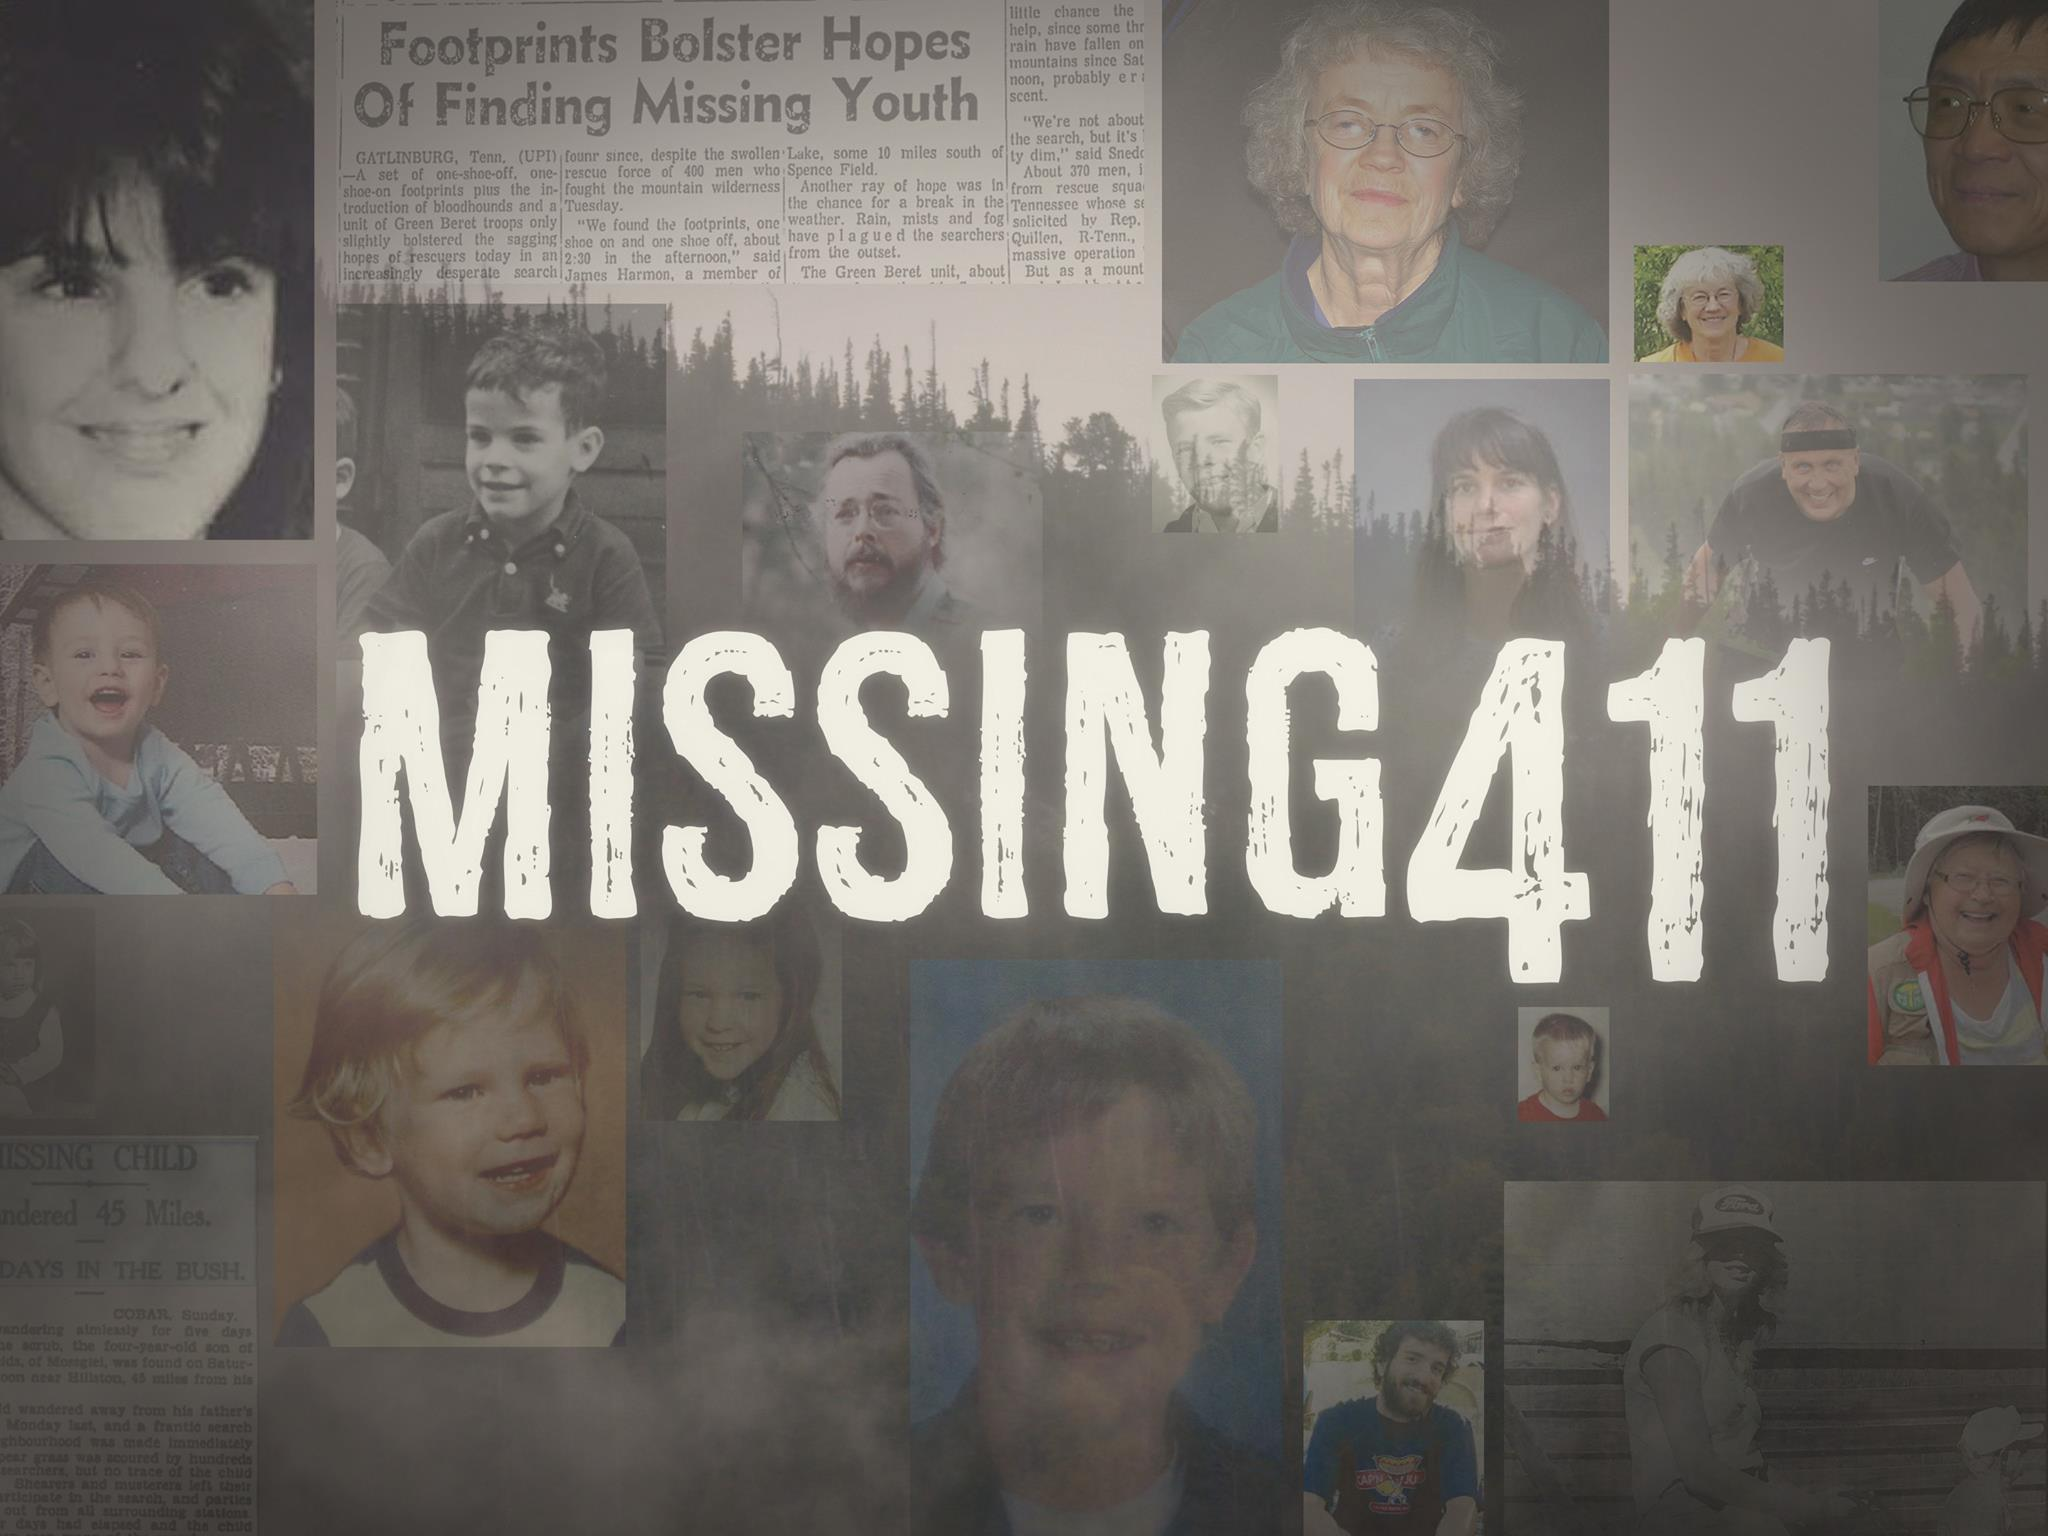 Missing 411 the movie